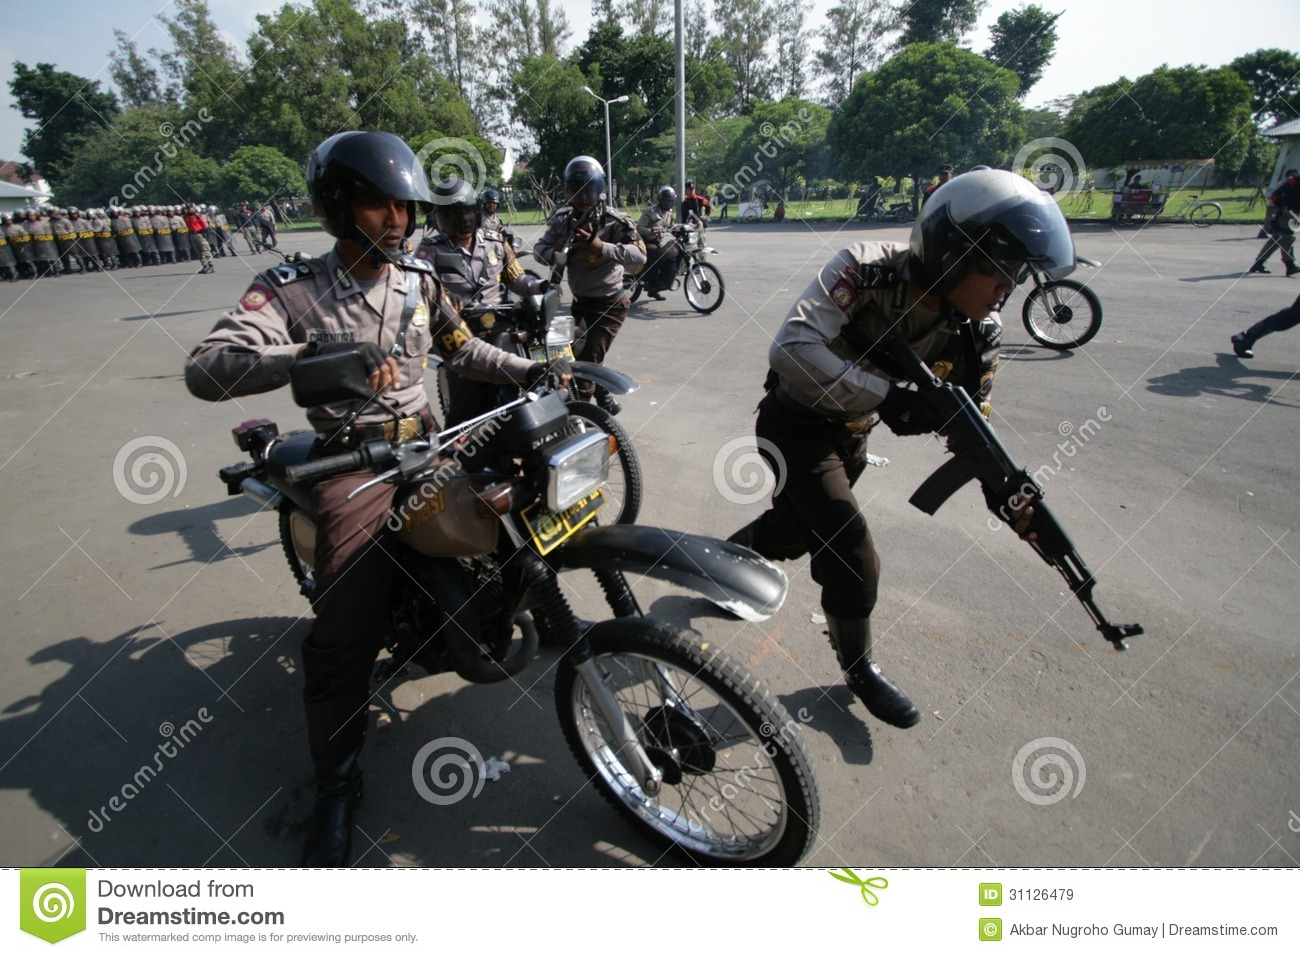 Armed police jump from motorcycle to face the protester in riots